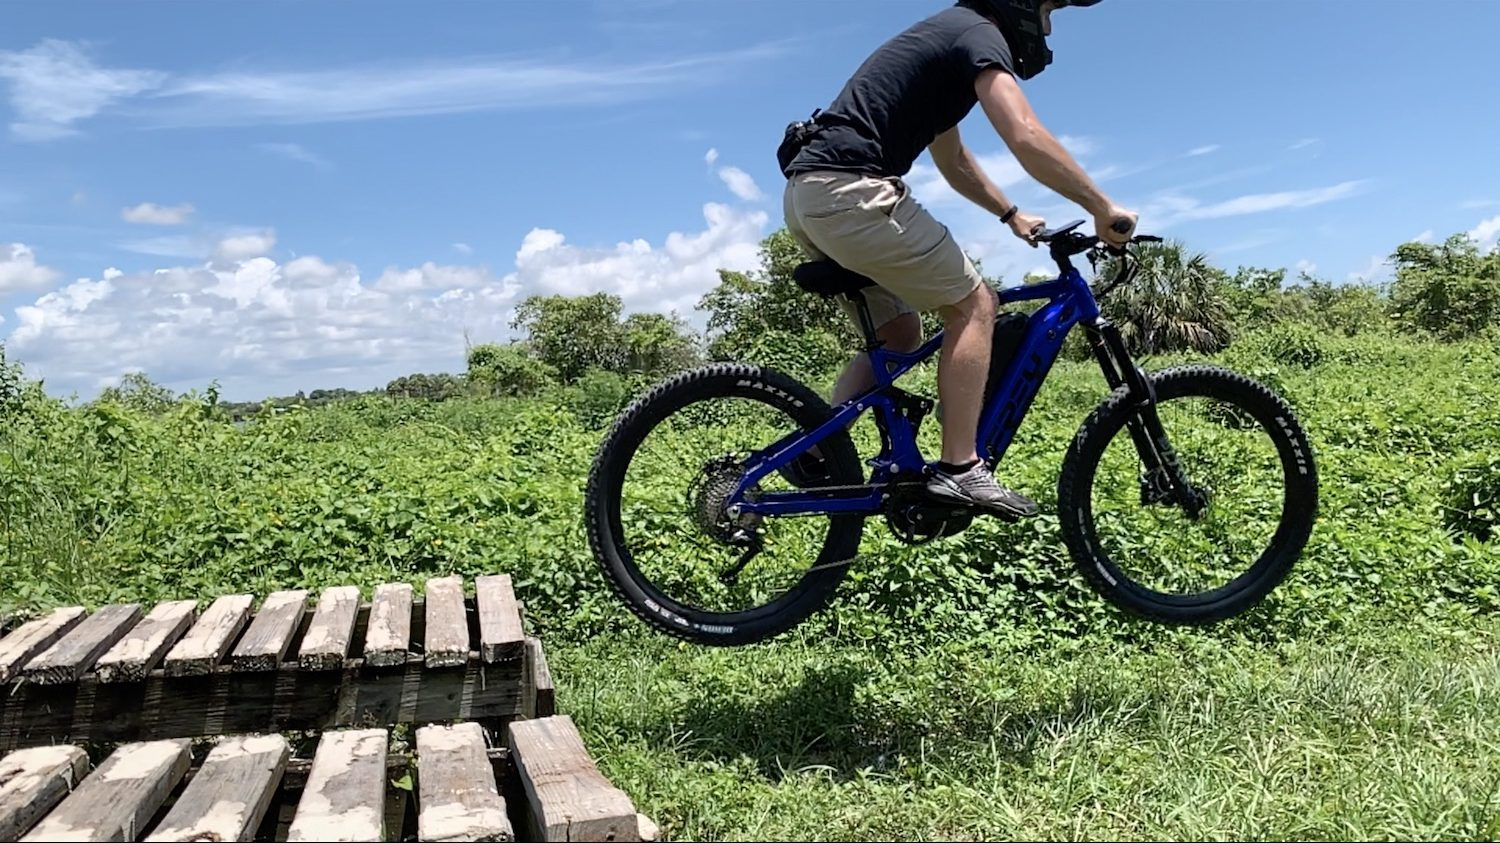 Yes, electric bikes give you a workout (even the crazy 1,500W e-bikes)